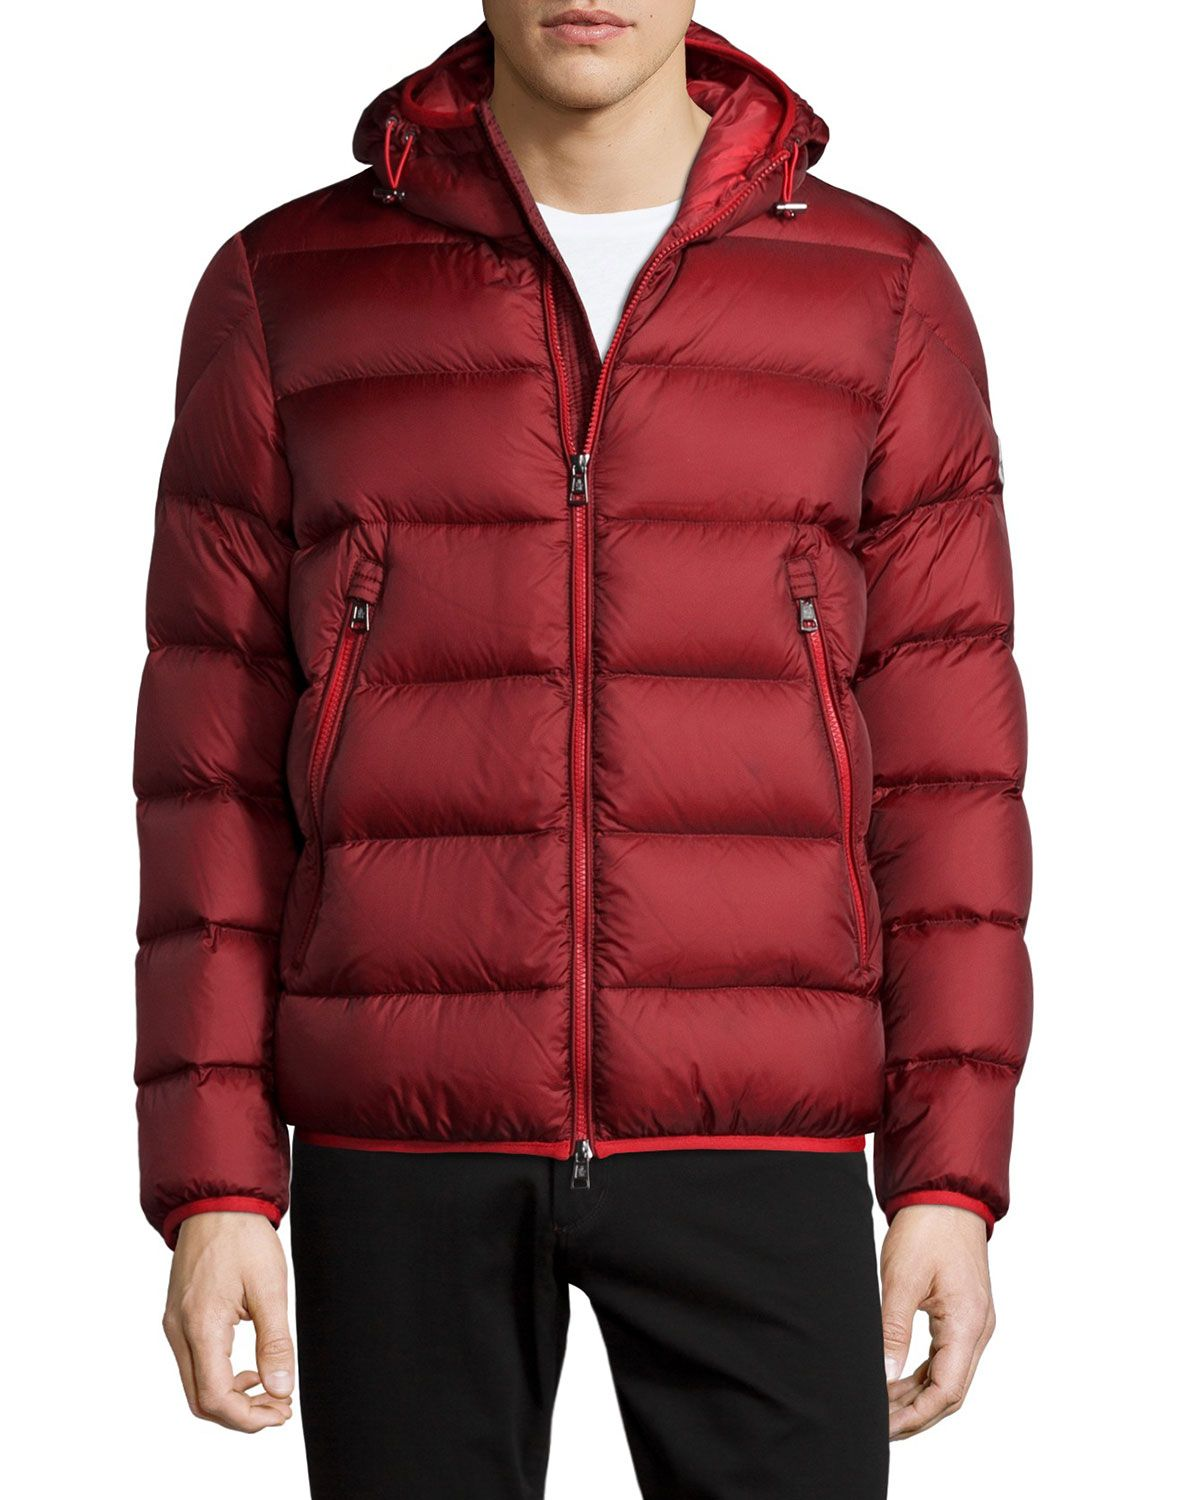 moncler red puffer jacket mens